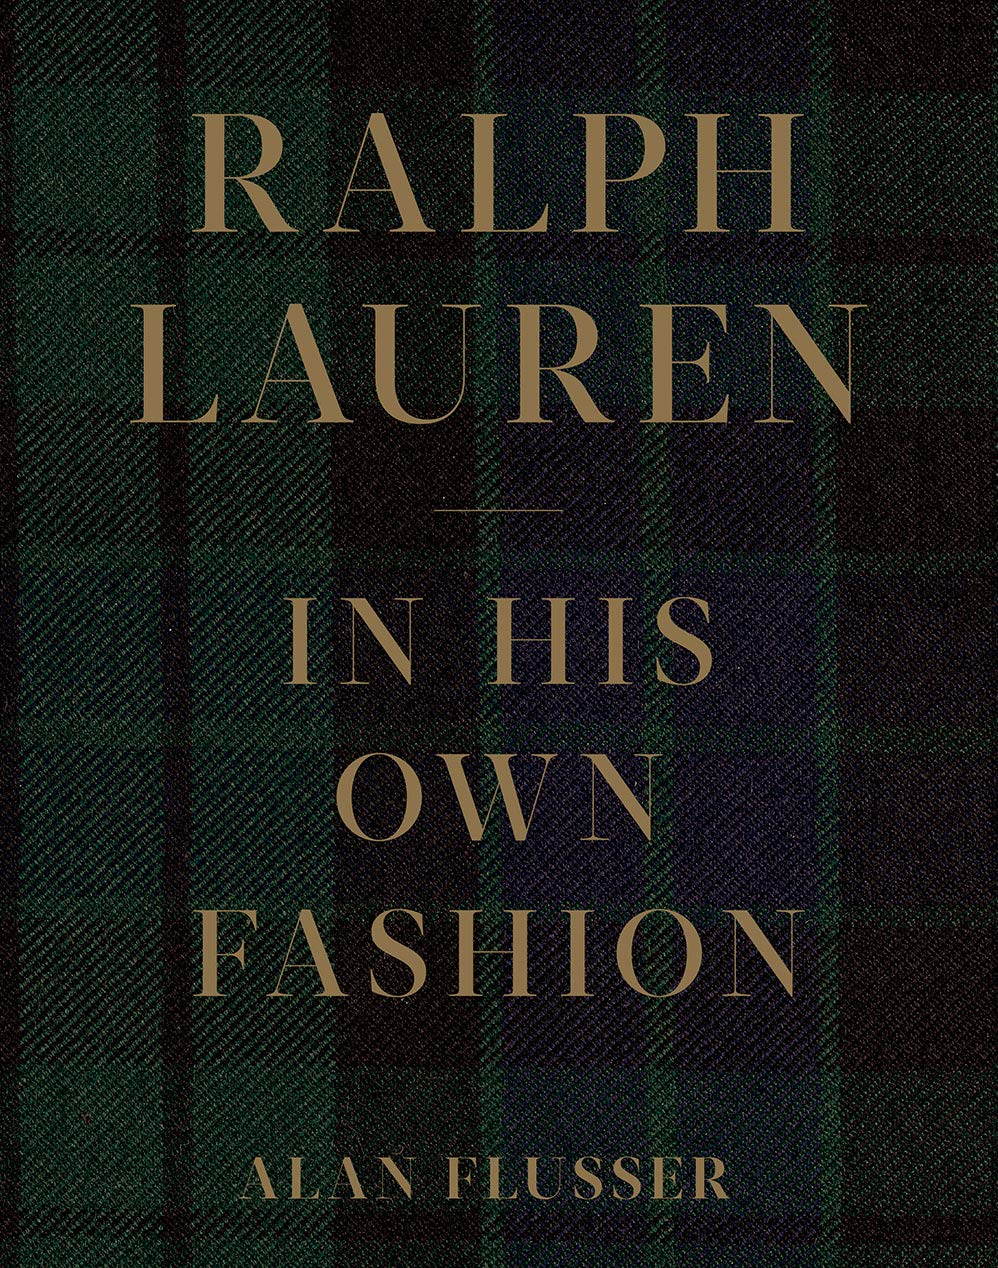 $50 • Ralph Lauren By: Alan Flusser